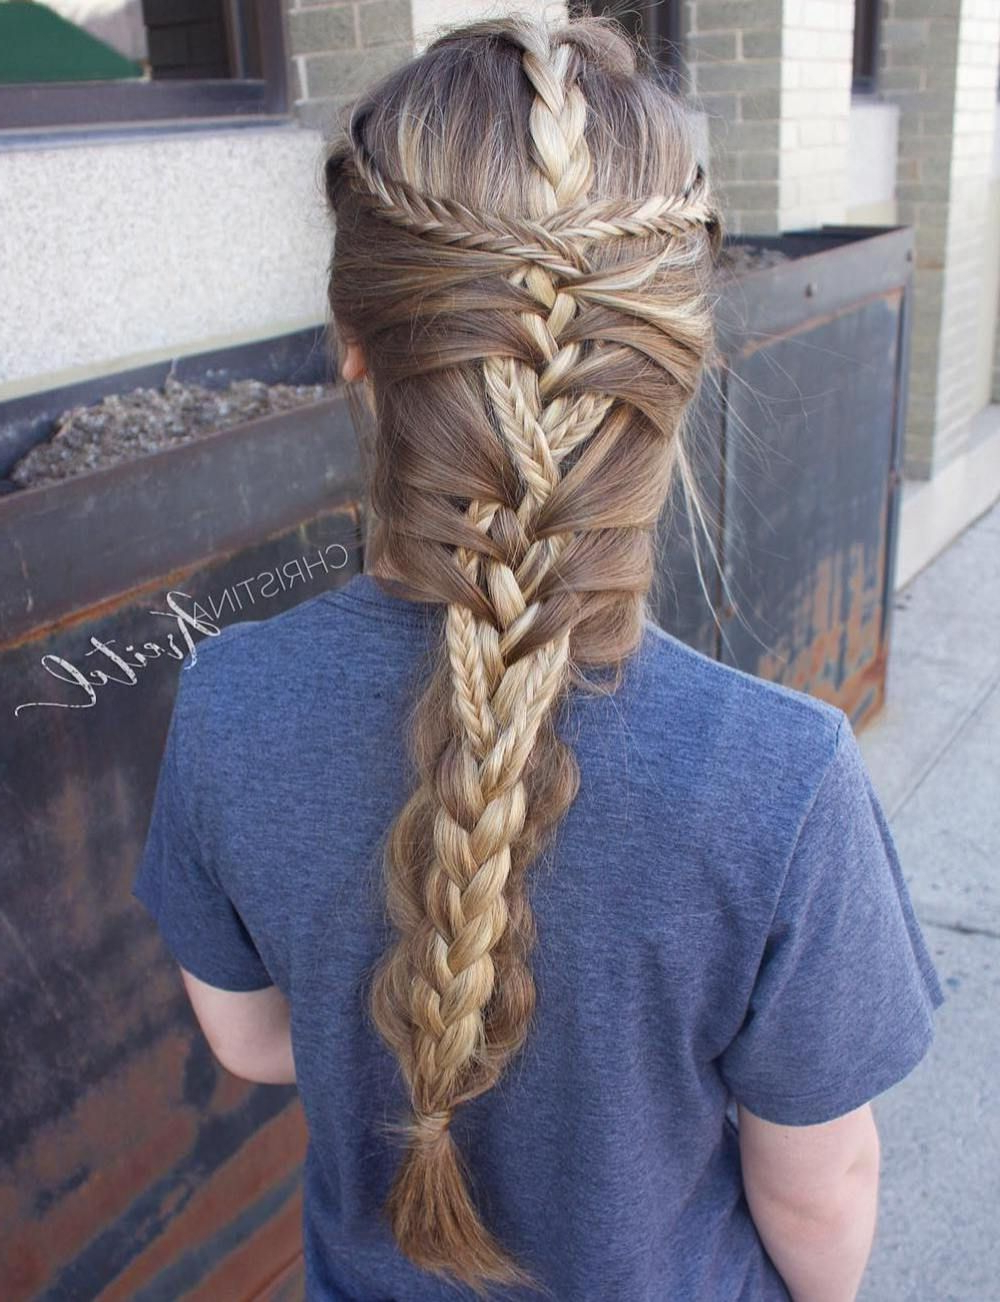 Braided Hairstyles, Mermaid Braid Pertaining To Well Known Braided Mermaid Mohawk Hairstyles (View 8 of 20)